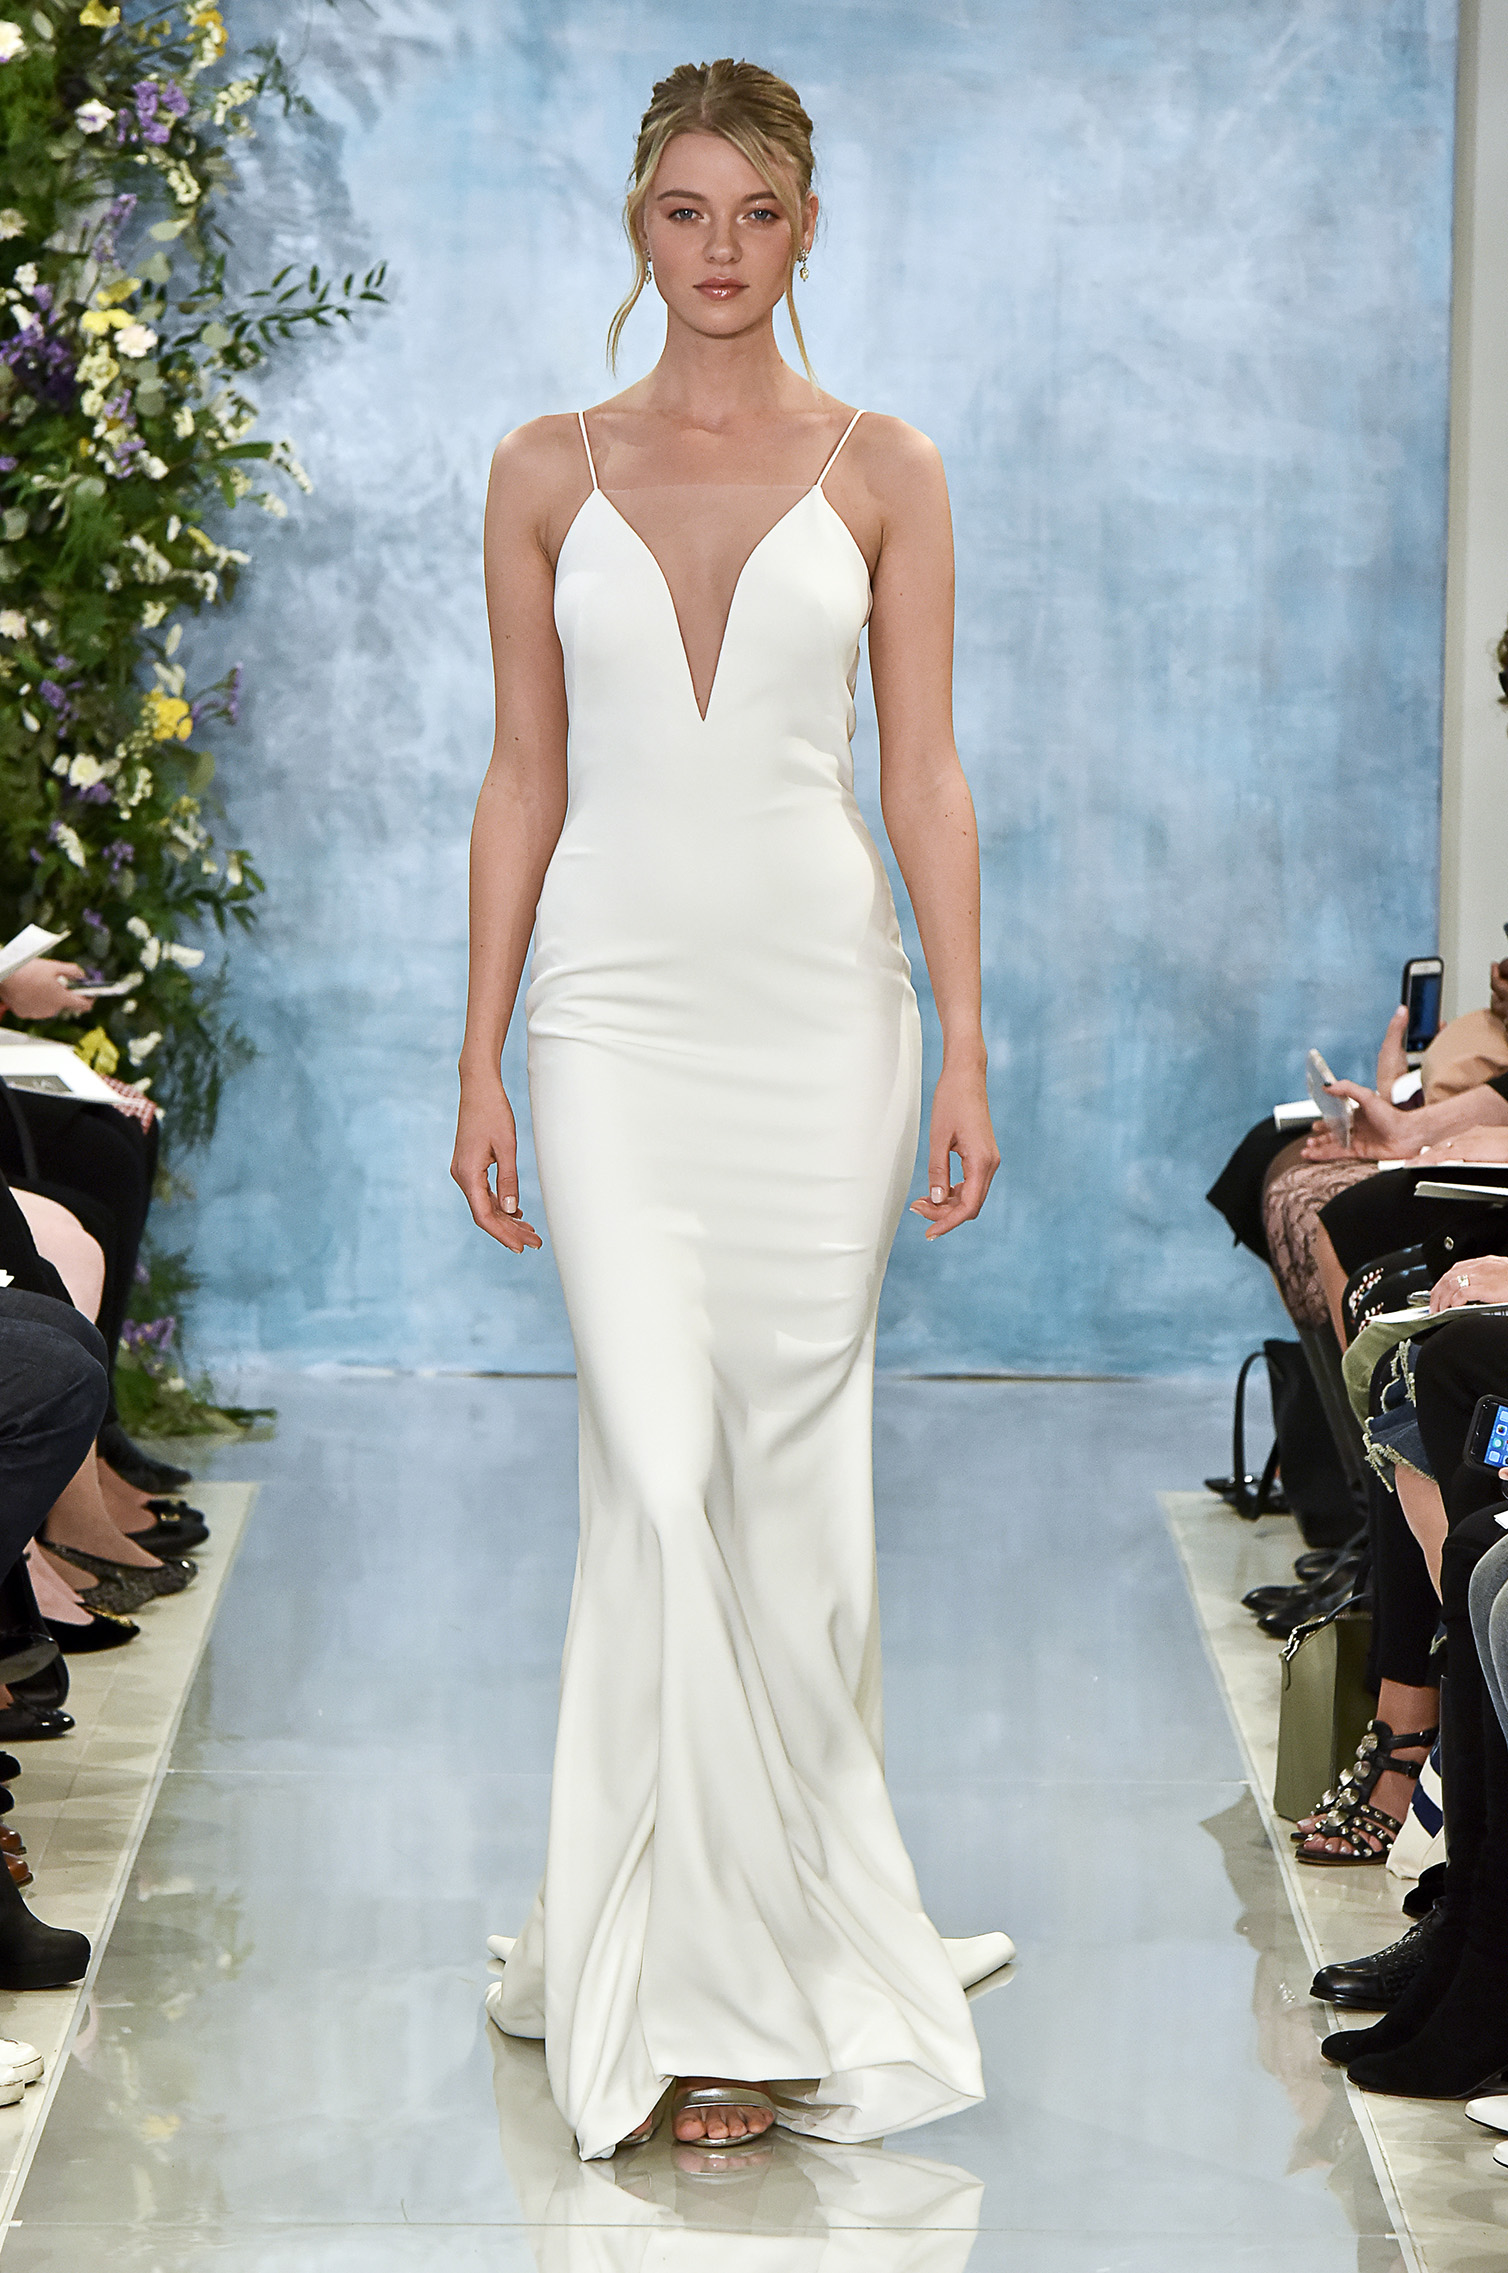 Royal wedding gown inspiration by THEIA